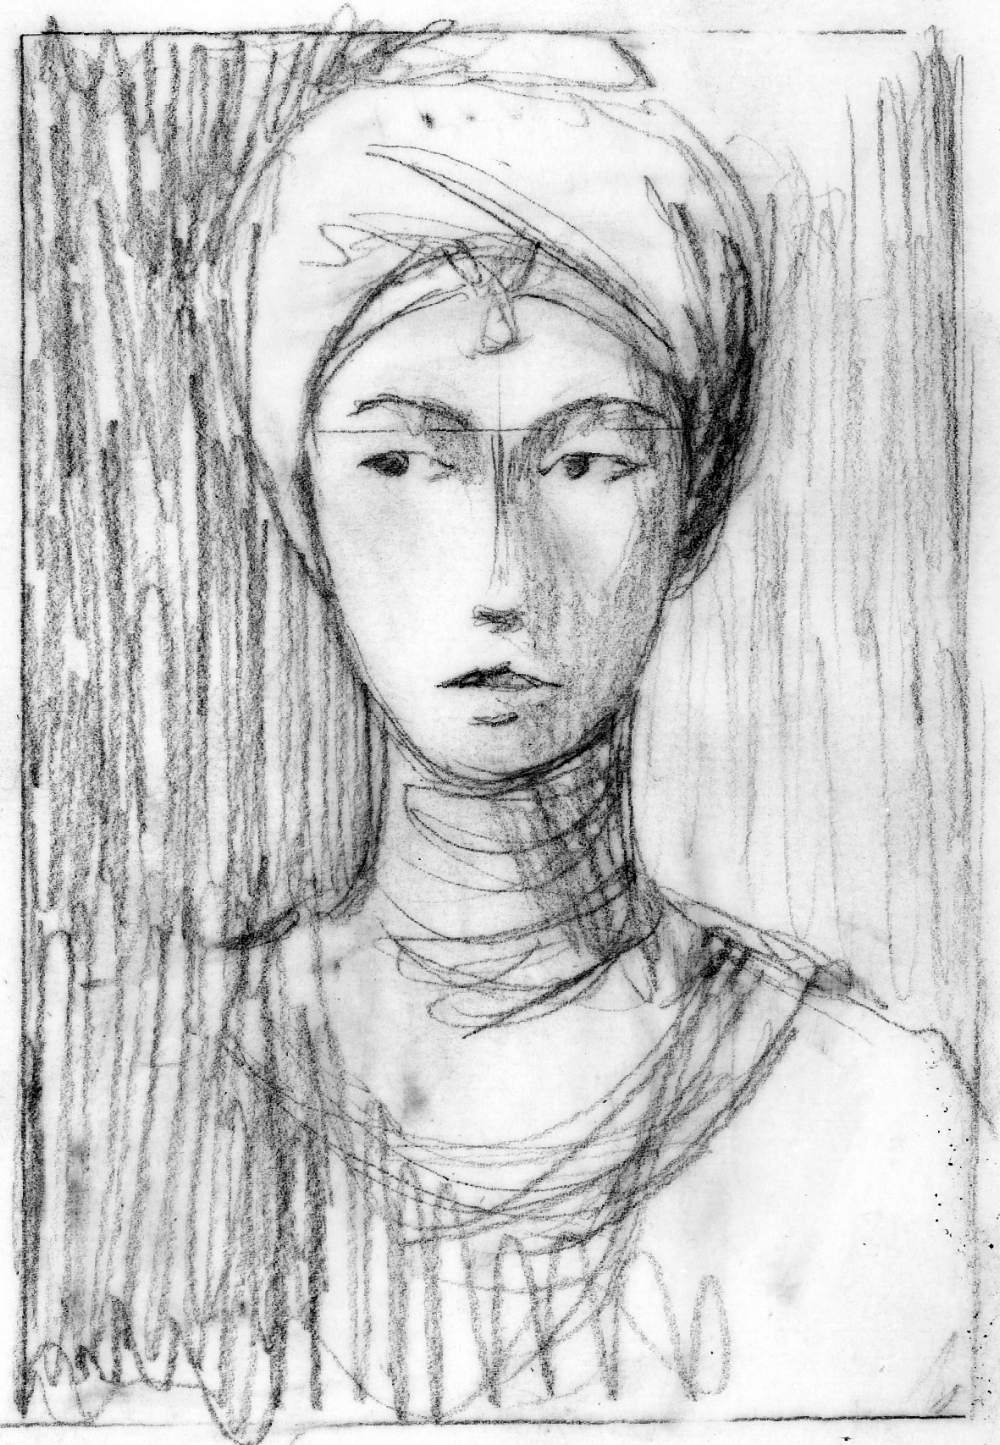 """"""" Sappho """", black pencil on tracing paper, 3 mn sketch"""